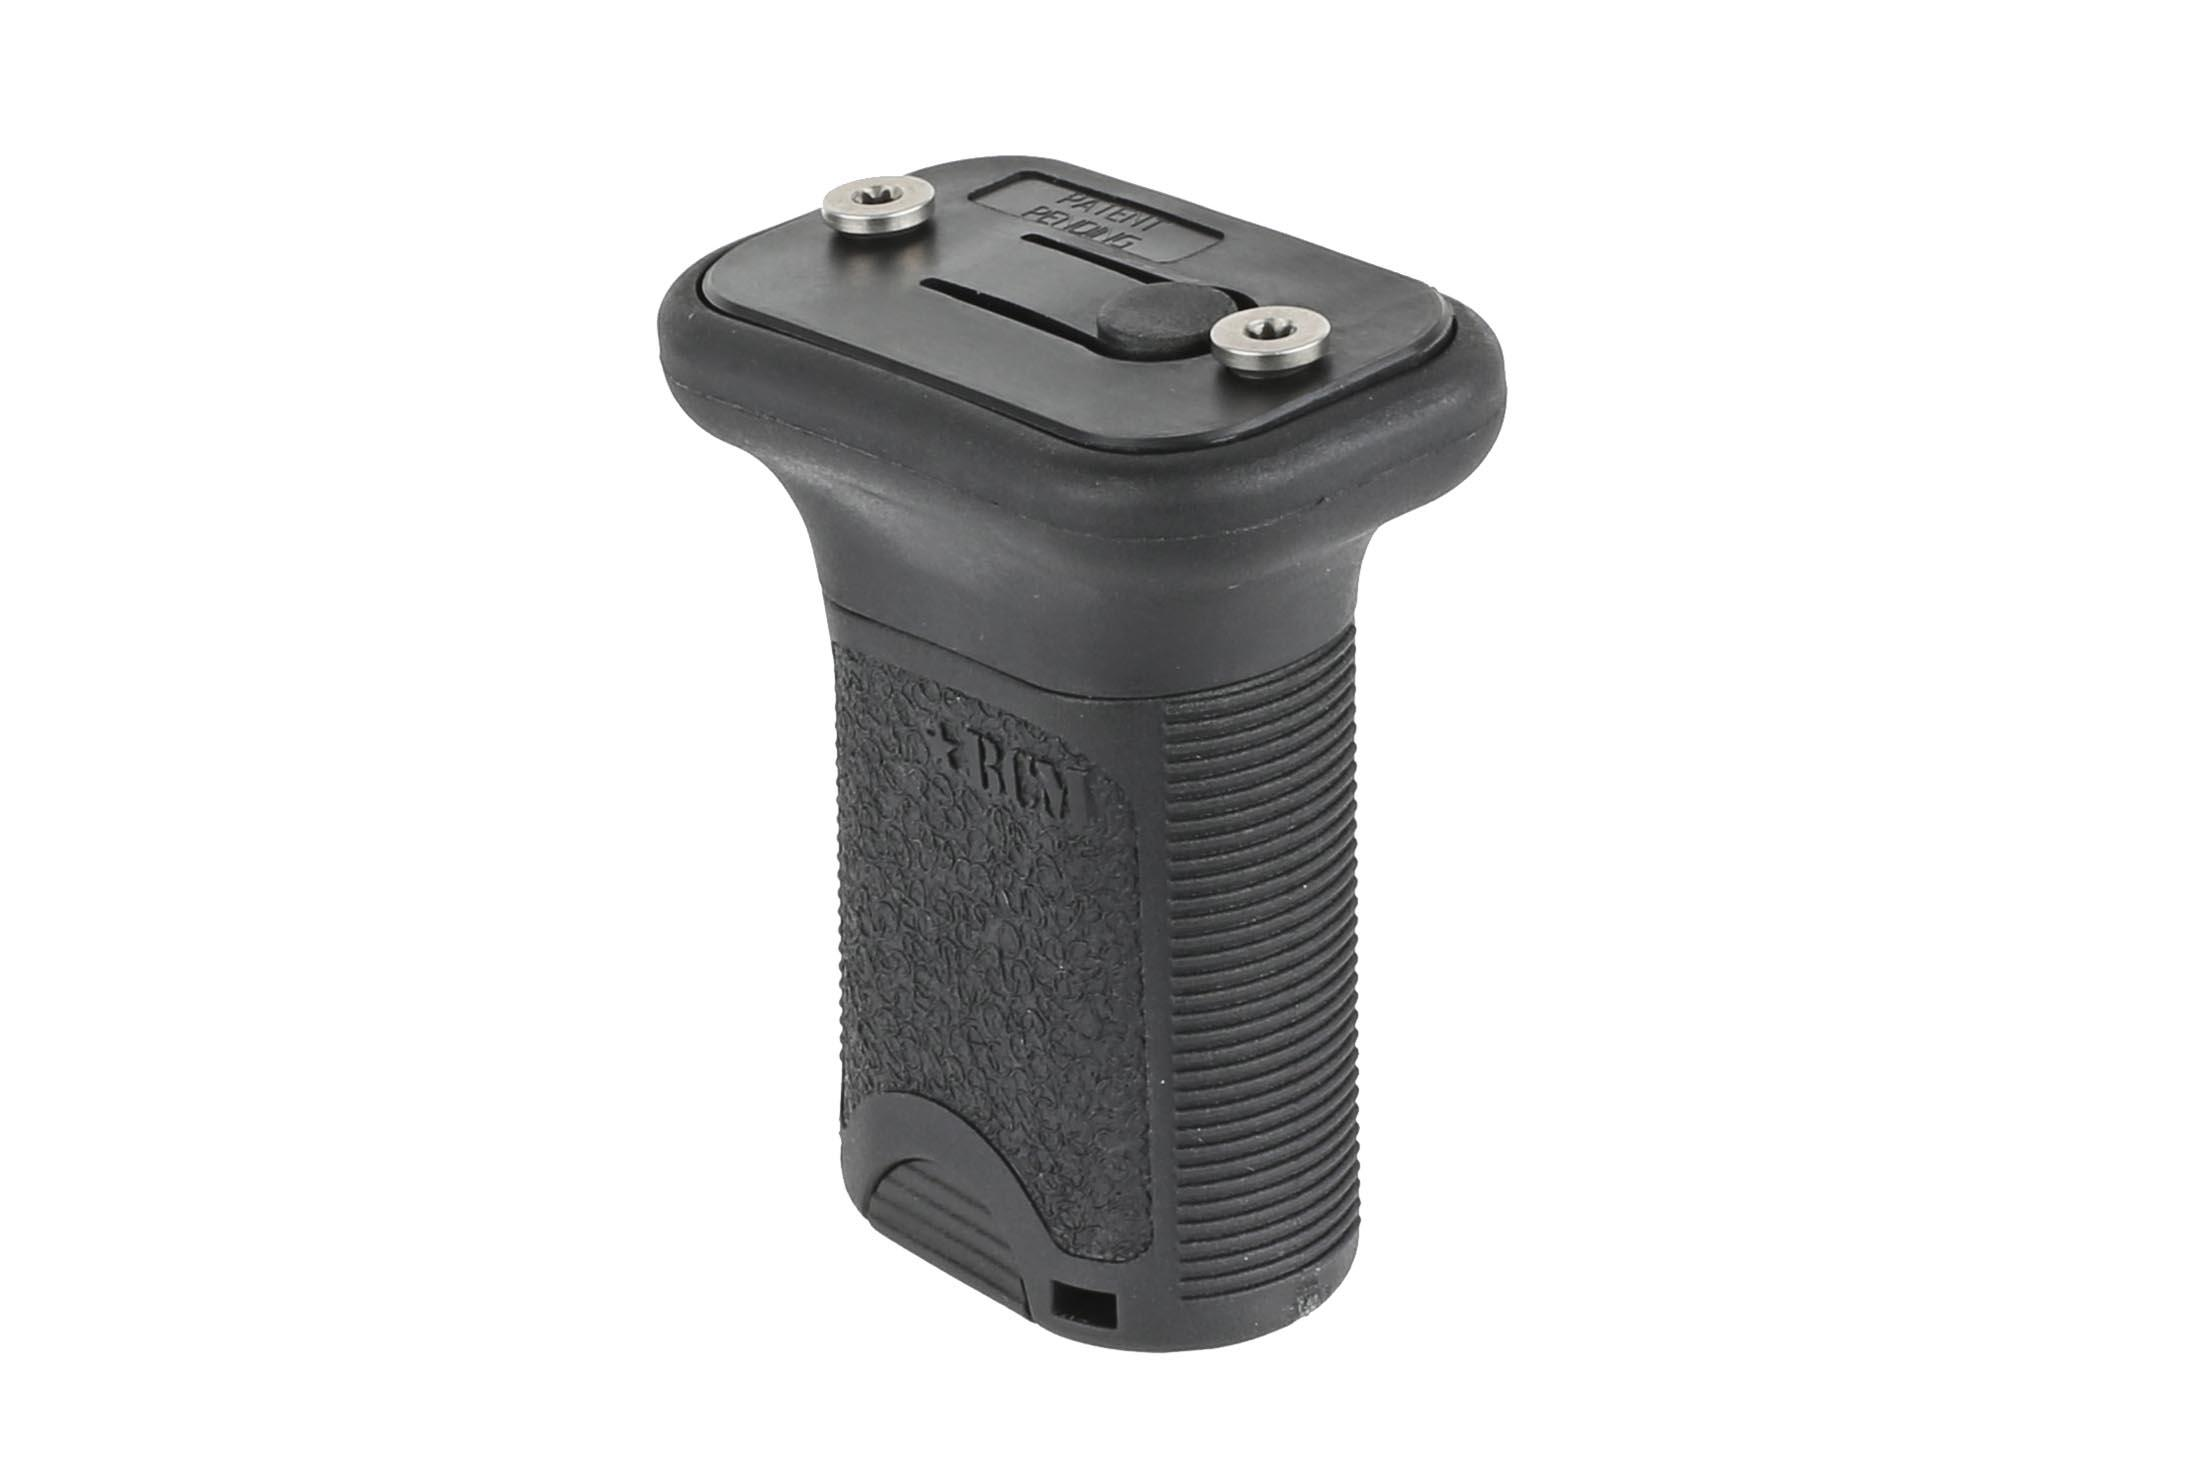 The BCMGunfighter short vertical grip keymod is made from durable black polymer